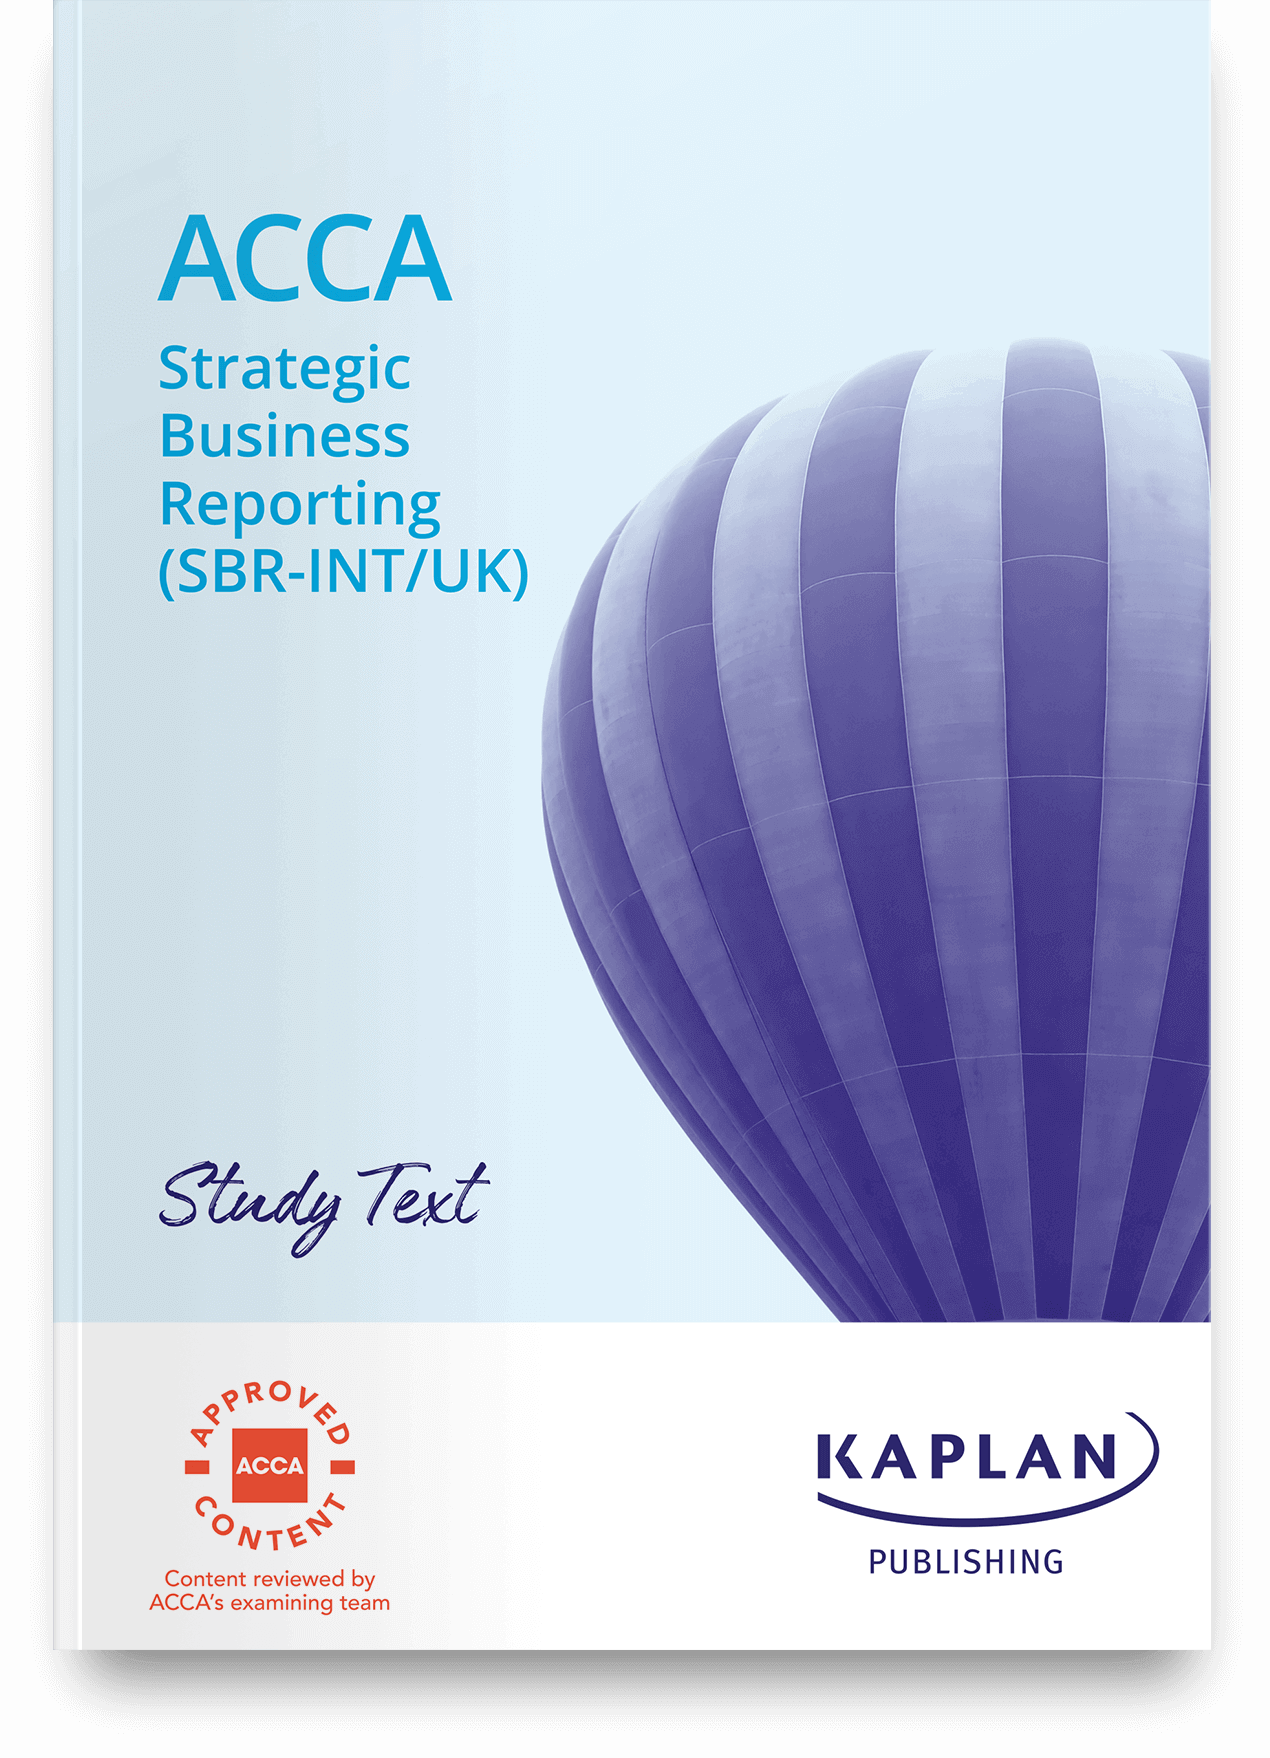 ACCA Strategic Business Reporting Study Text